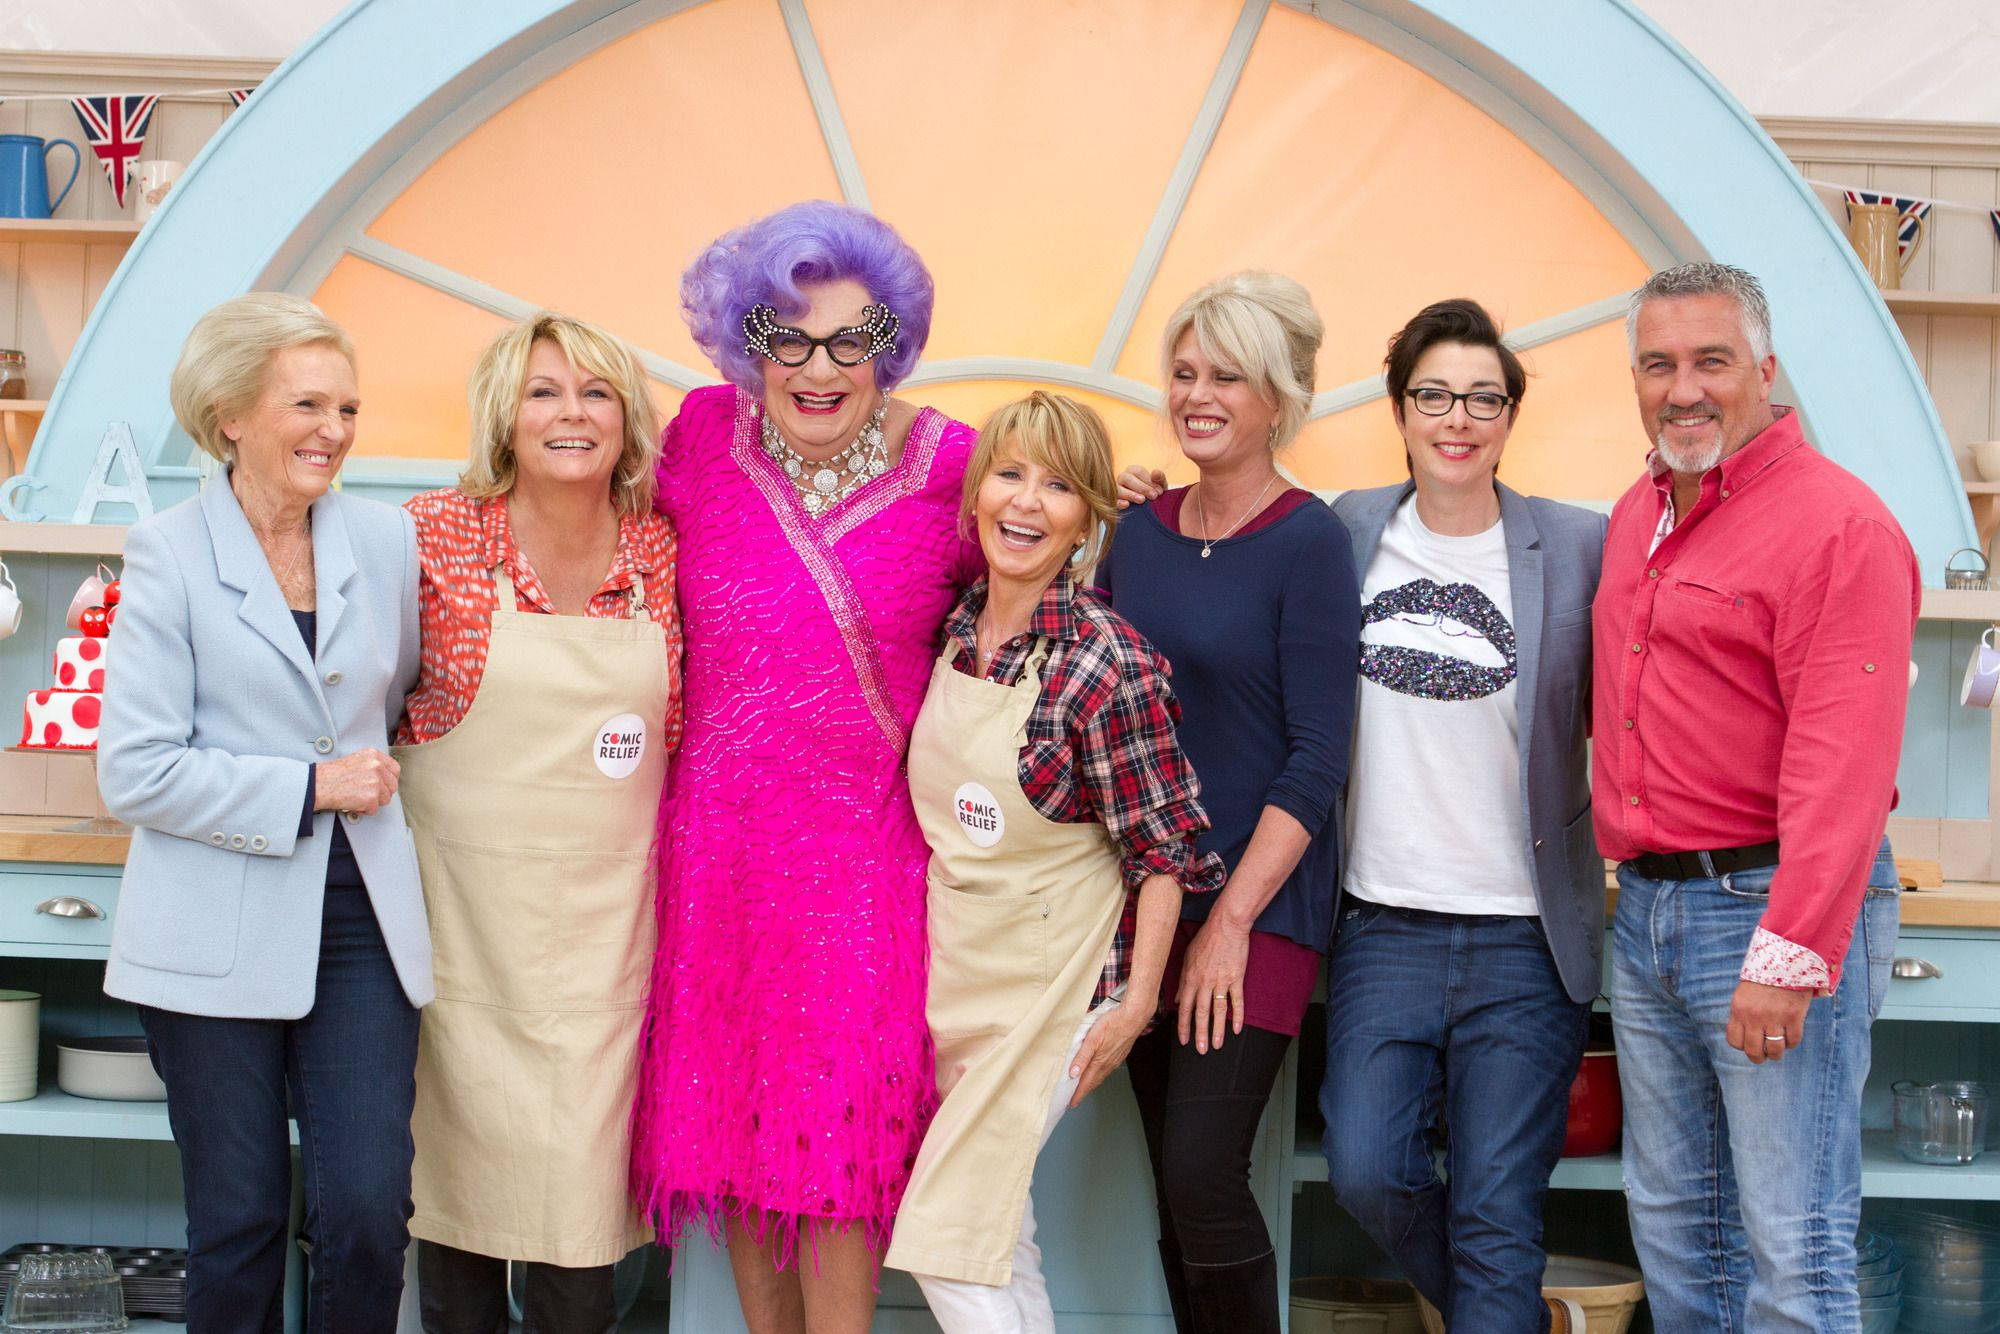 Bit Of Comic Relief For Tonights >> Comic Relief Bake Off 16 Funniest Bits